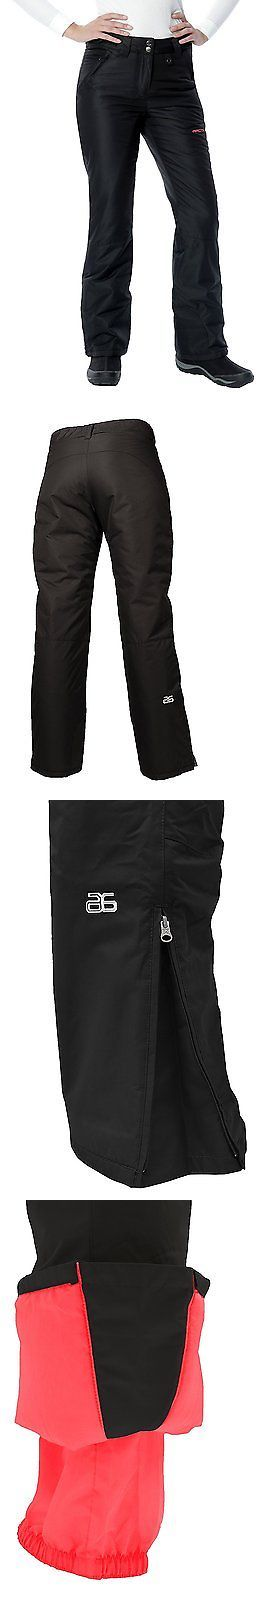 Snow Pants and Bibs 36261: Arctix Womens Classic Snow Pant, Black, 4X -> BUY IT NOW ONLY: $43.38 on eBay!